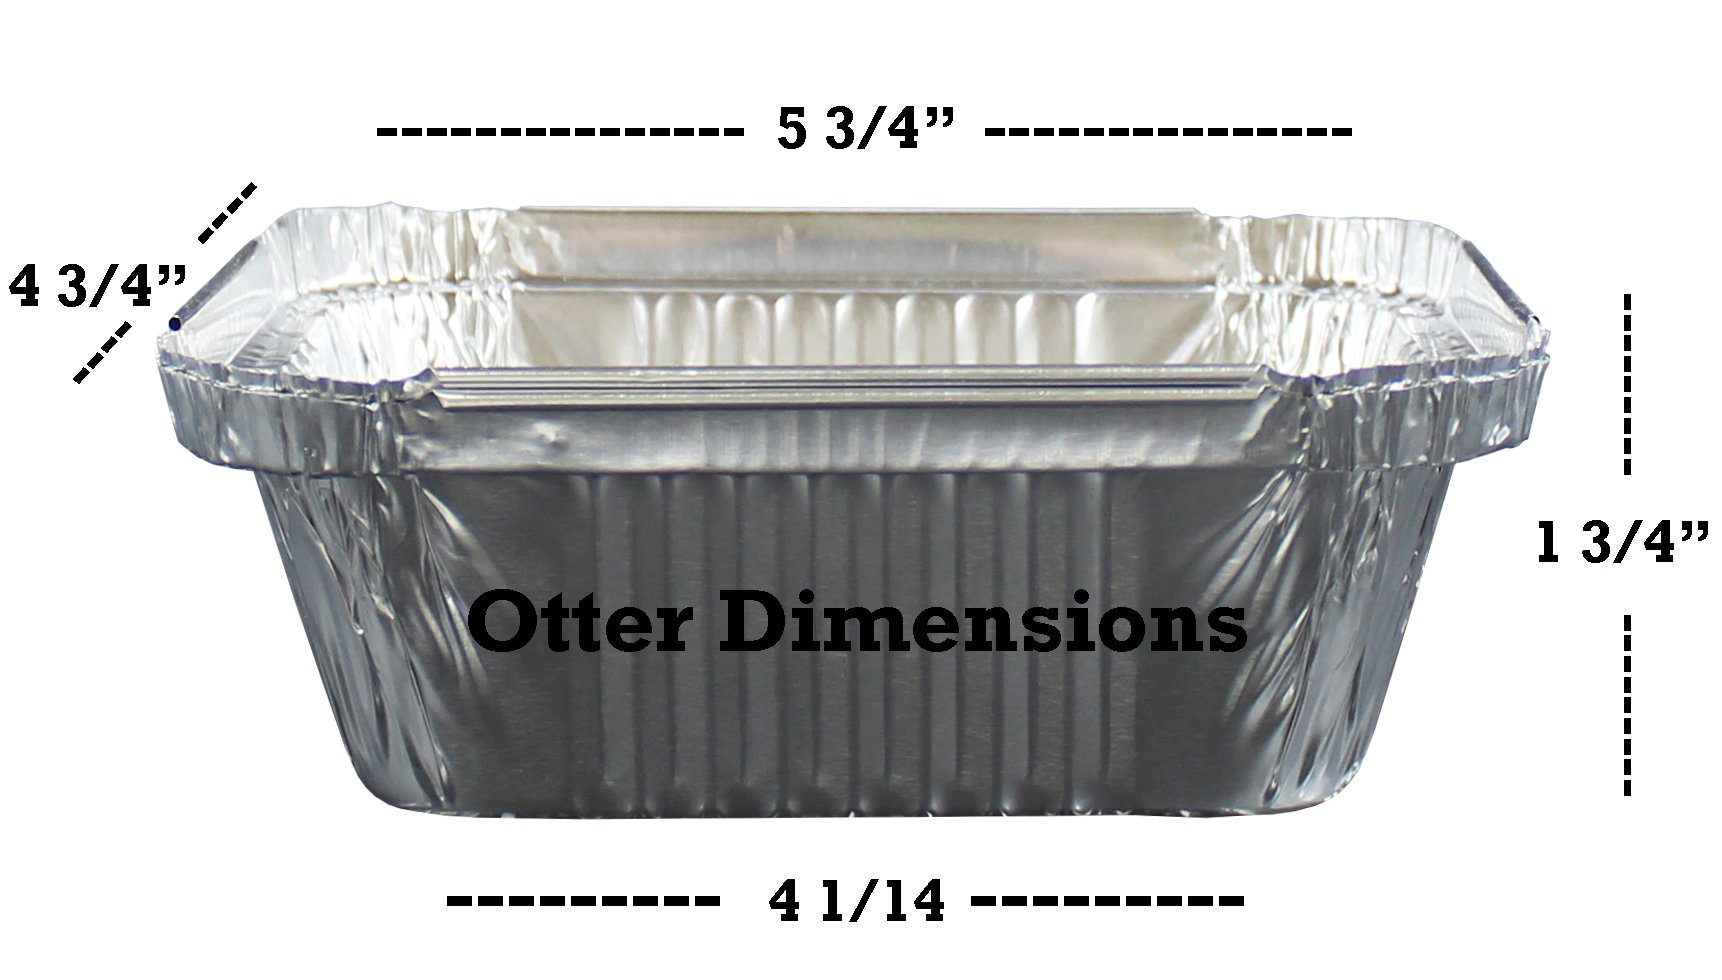 """100 Pack of Disposable Takeout Pans with Clear Lids – 1 Lb Capacity Aluminum Foil Food Containers – Strong Seal for Freshness – Eco-Friendly and Recyclable – 5x4"""" Inch Drip Pans - By MontoPack by MontoPack (Image #3)"""